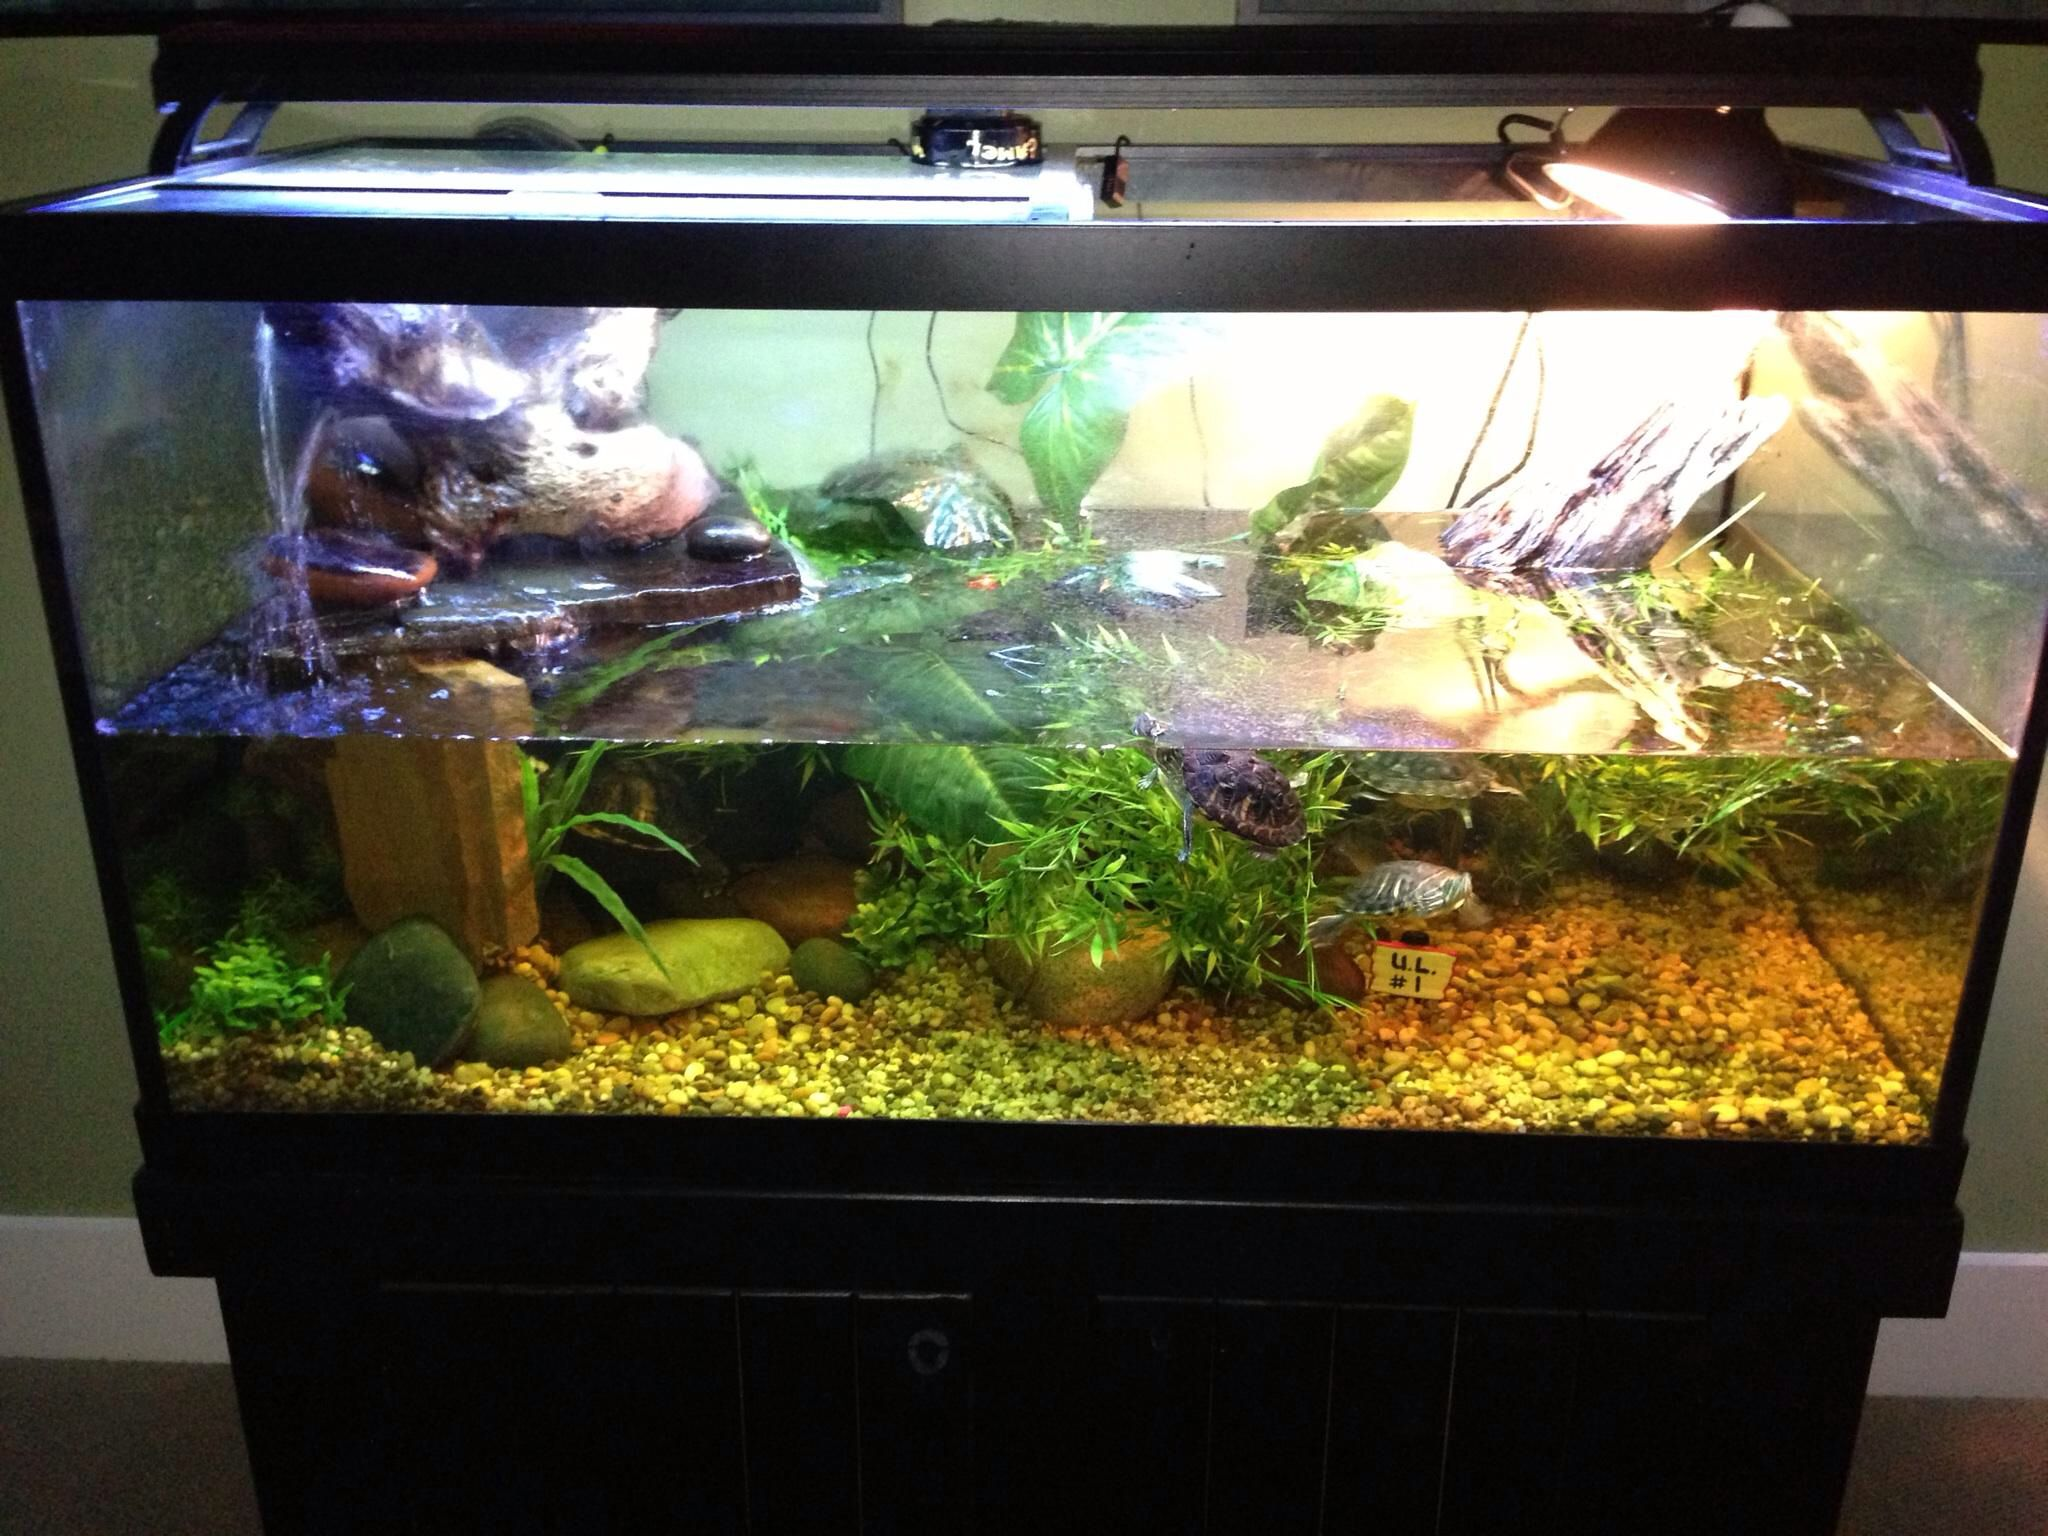 Turtle Tank Decor Turtle Tank At Our Clients Home Here In Louisville Ky Our